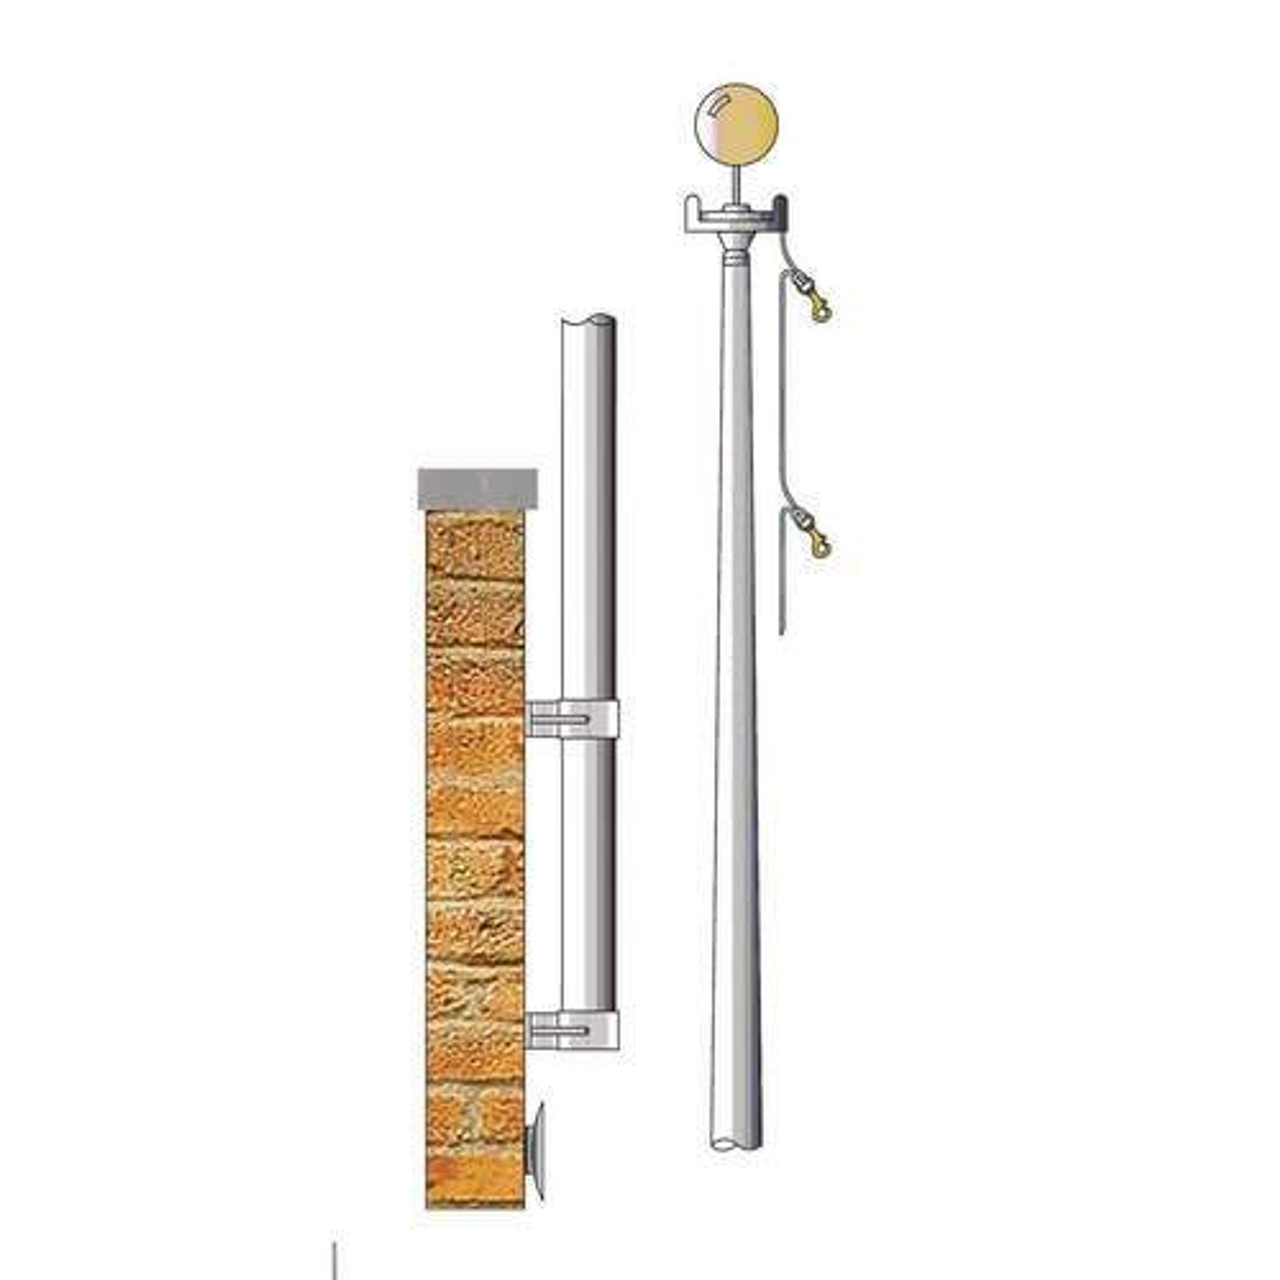 27 Vertical Wall Mounted Flagpole EVWS27